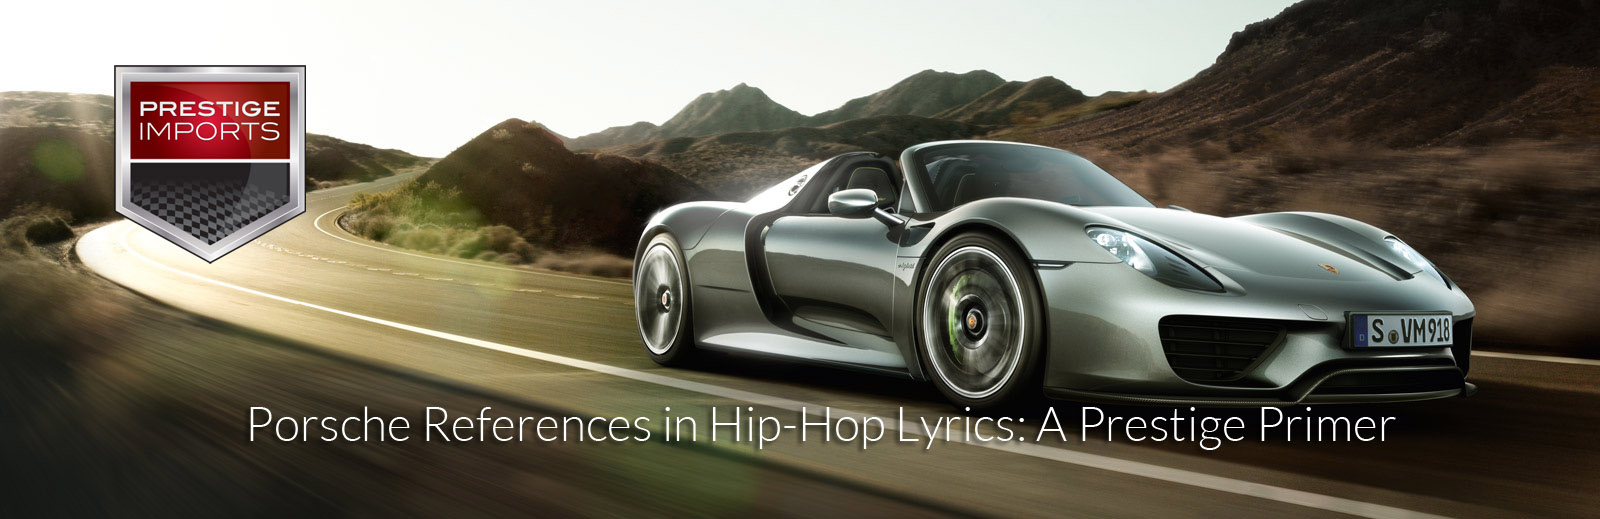 Porsche Lyrics in Hip-Hop Songs: A Prestige Primer